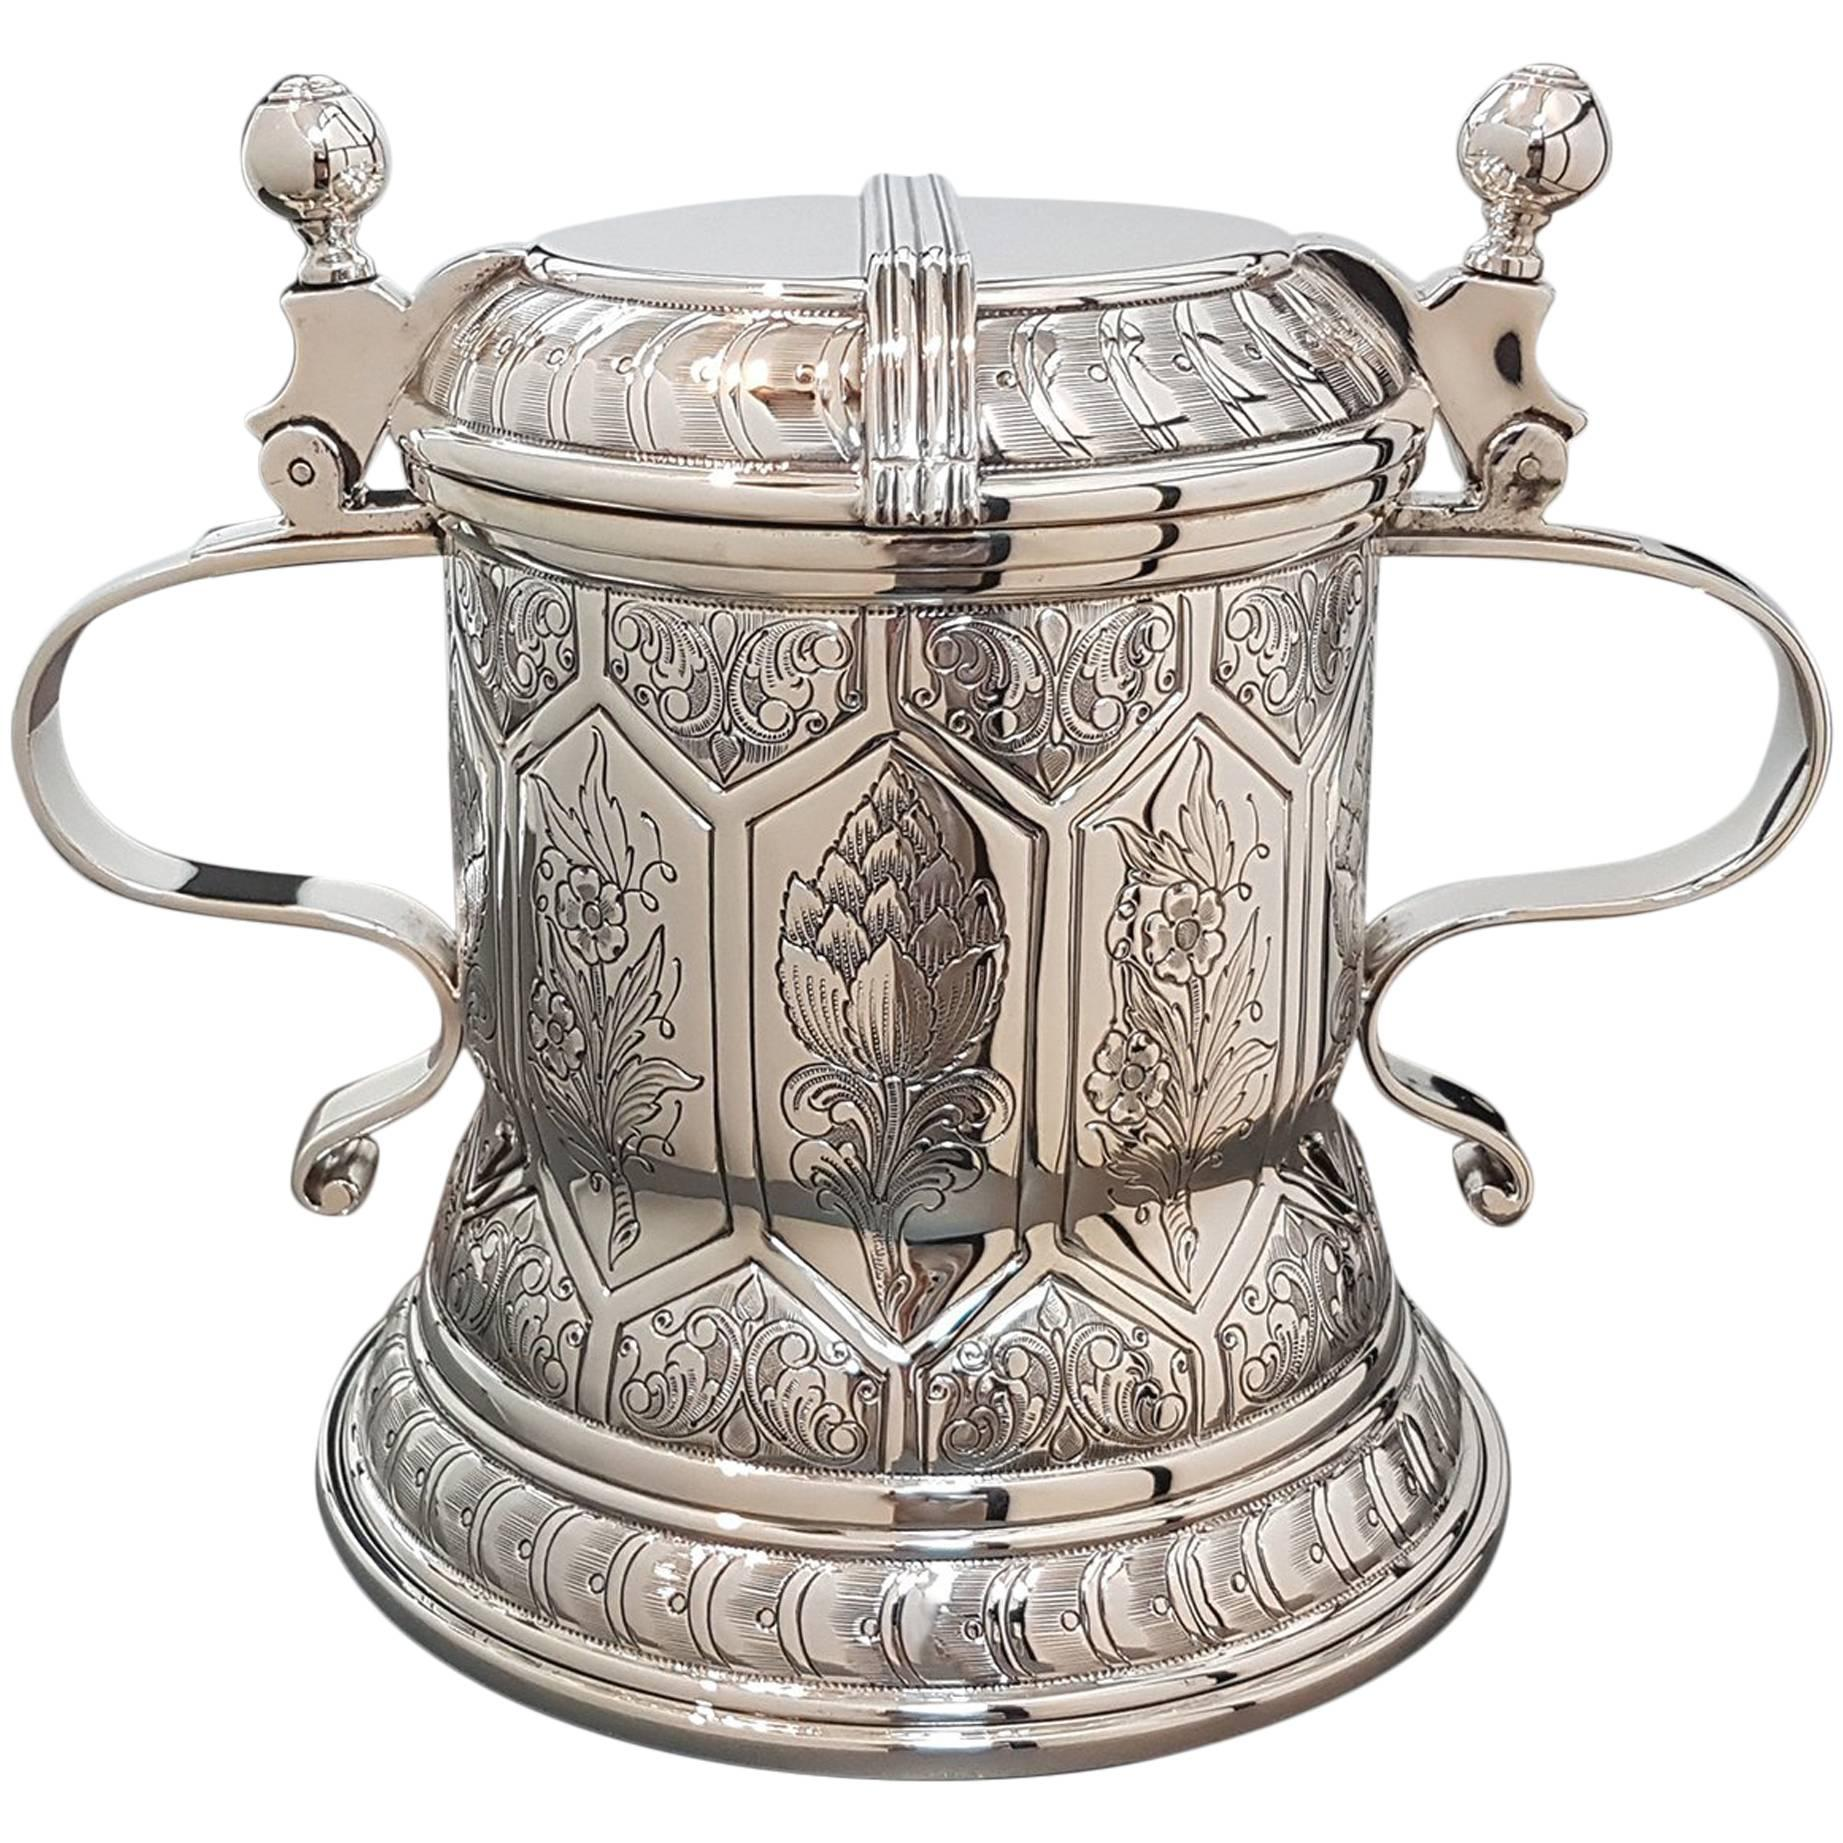 20th century Italian Sterling Silver Tankard german revival. Made in Italy